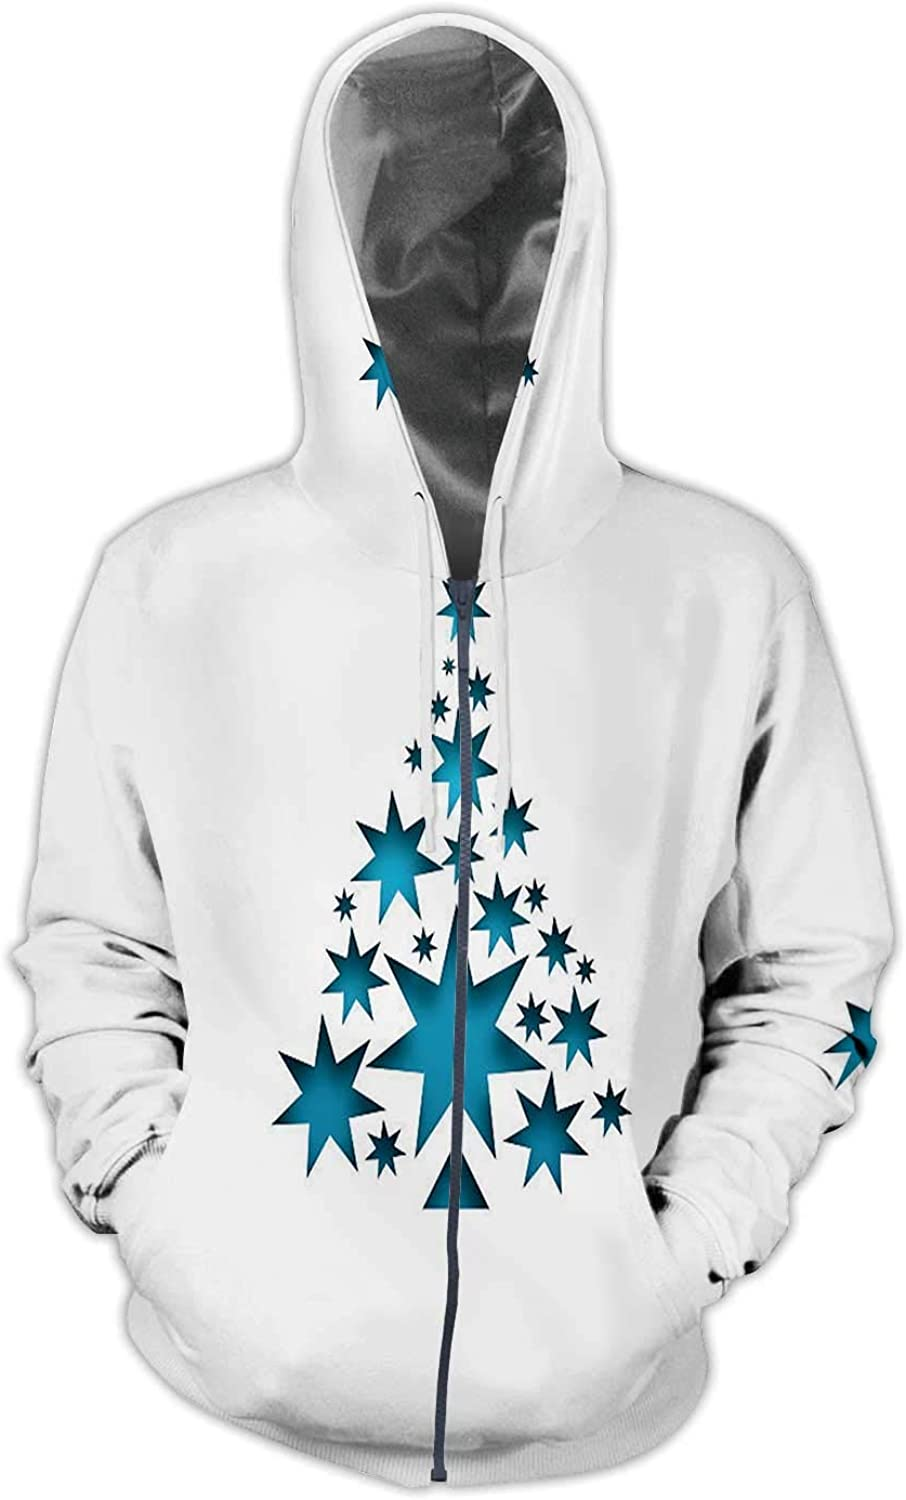 C COABALLA Abstract Background with Perspective. Illustration Ukraine,Ladies Full Zip Fleece with Pocket Single Line S